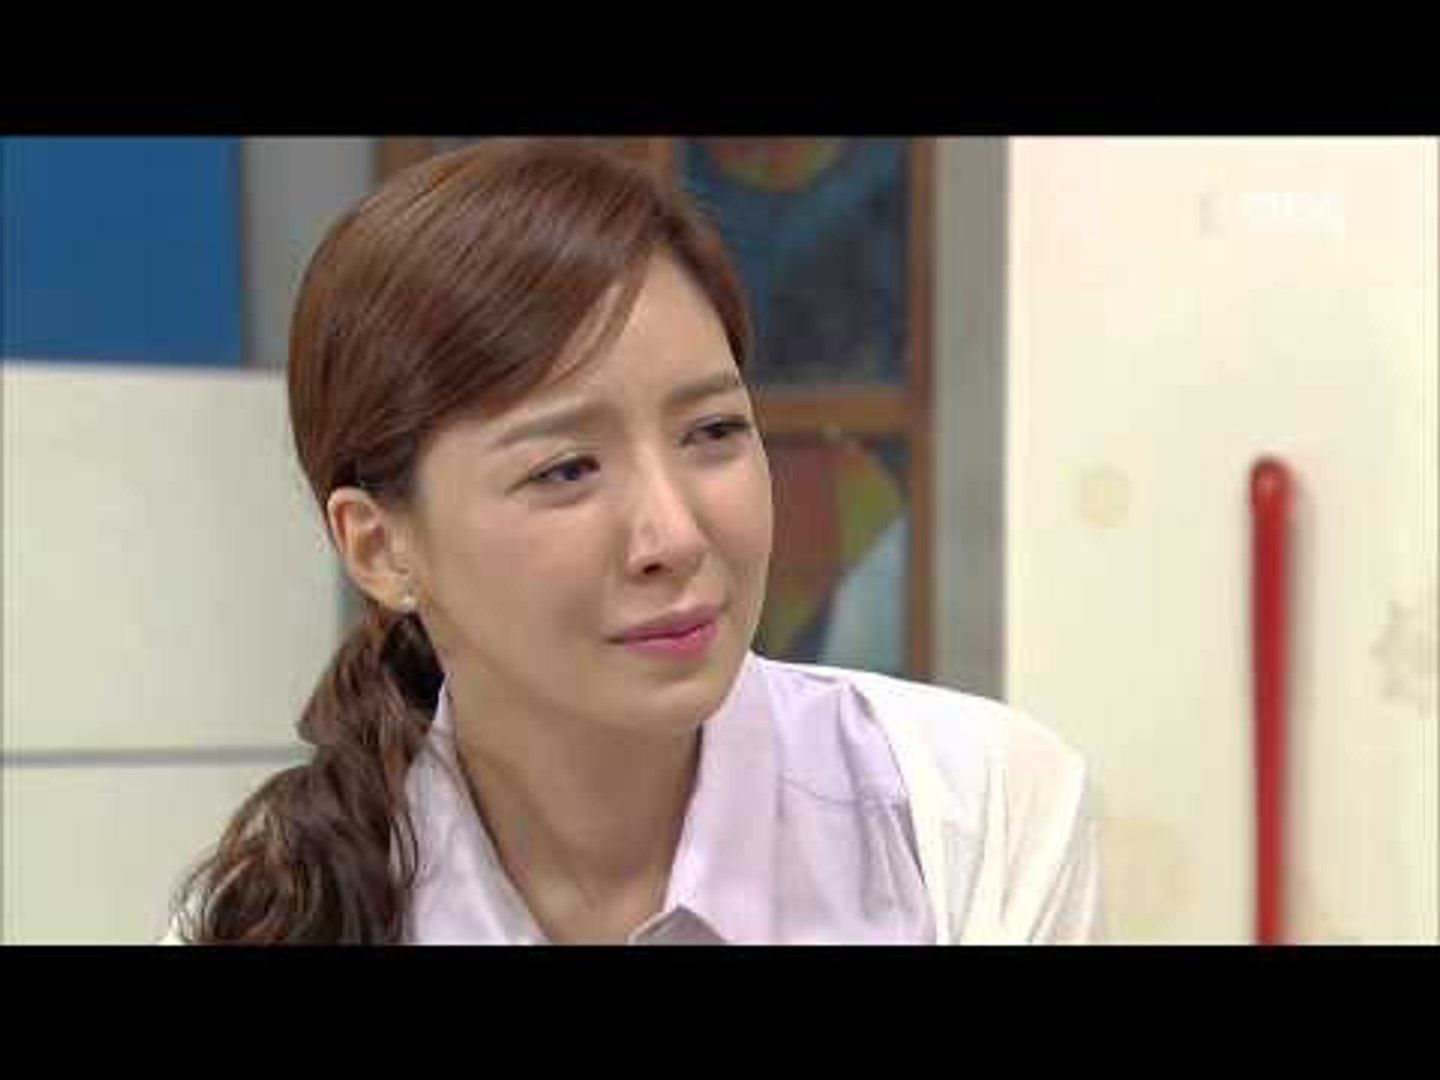 [Eve Love] 이브의 사랑 60회 - Wailful mother and daughter Are you waitting for mother? 애틋한 20150807